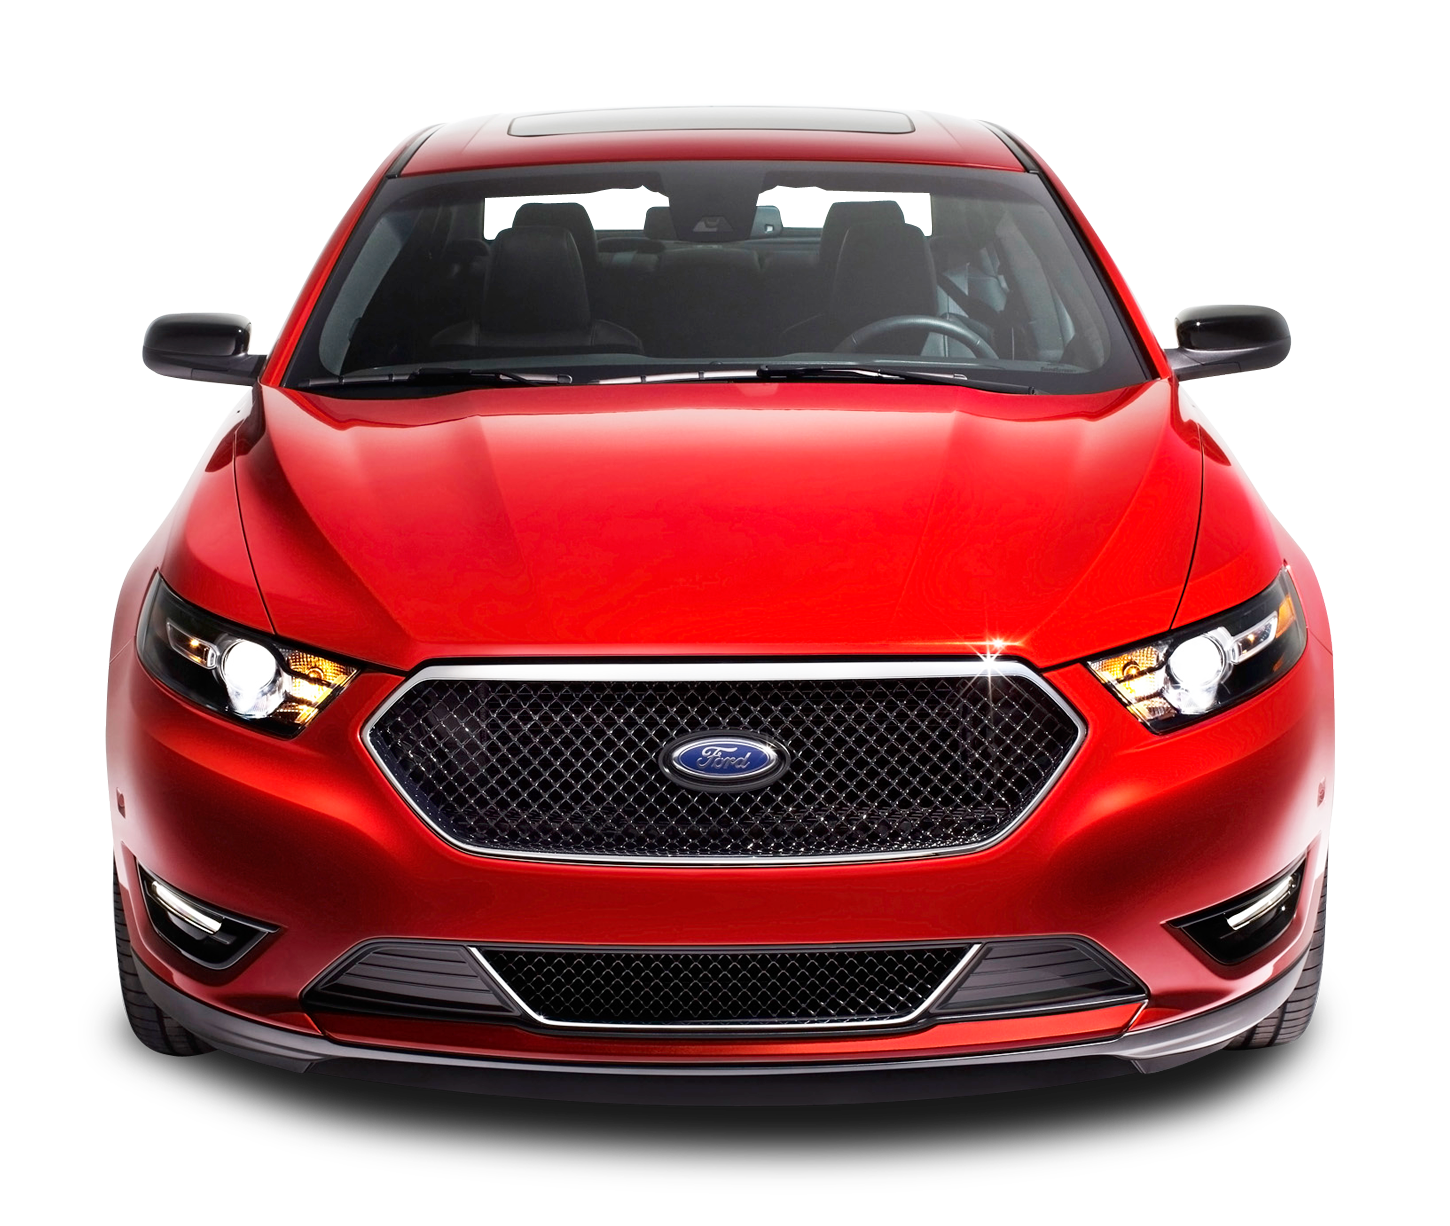 Red Ford Taurus Front Car Png Image Purepng Free